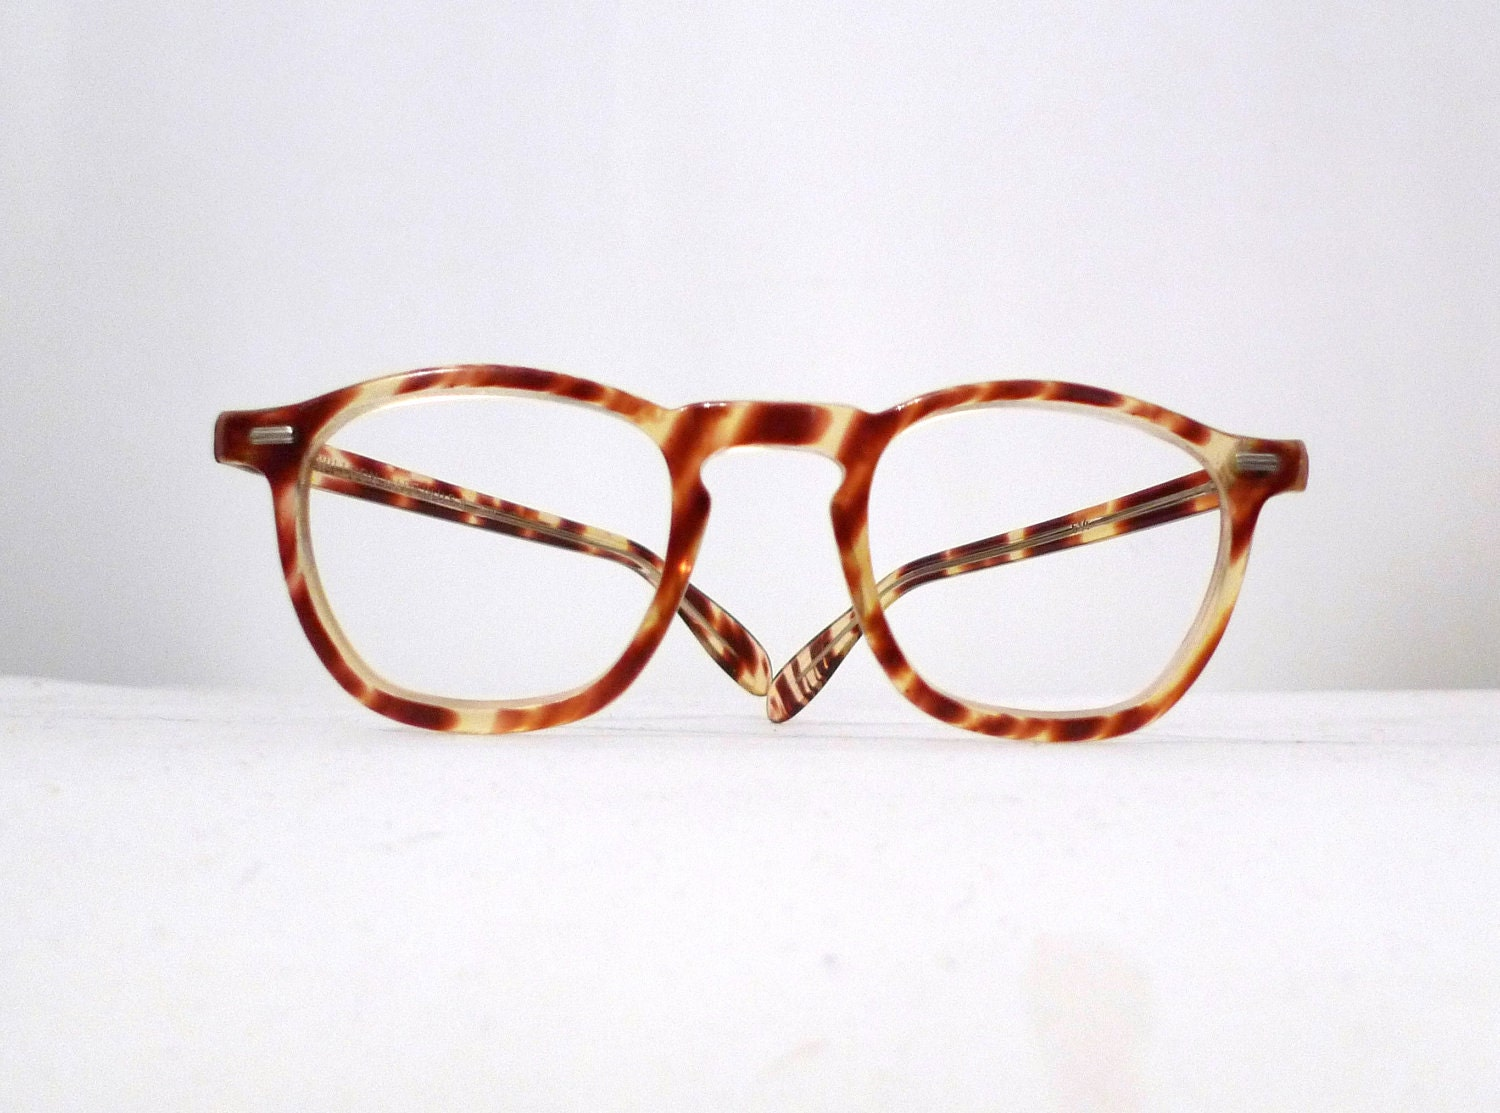 tortoise shell eyeglasses classic mad men johnny depp eye frames zoom